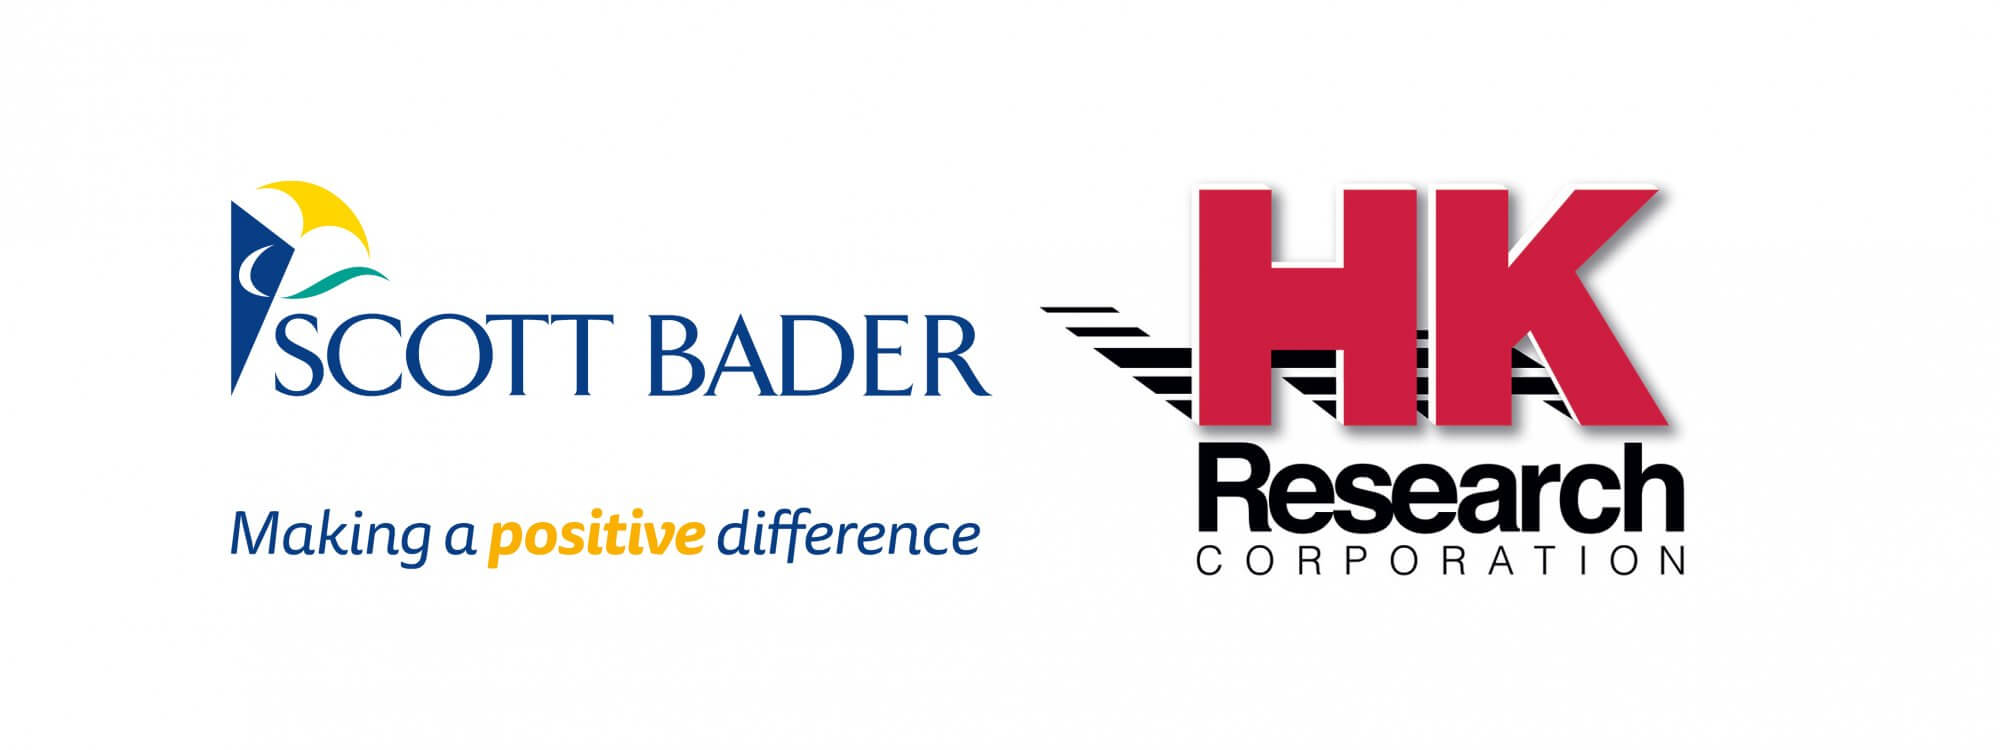 Scott Bader announces alliance with HK Research